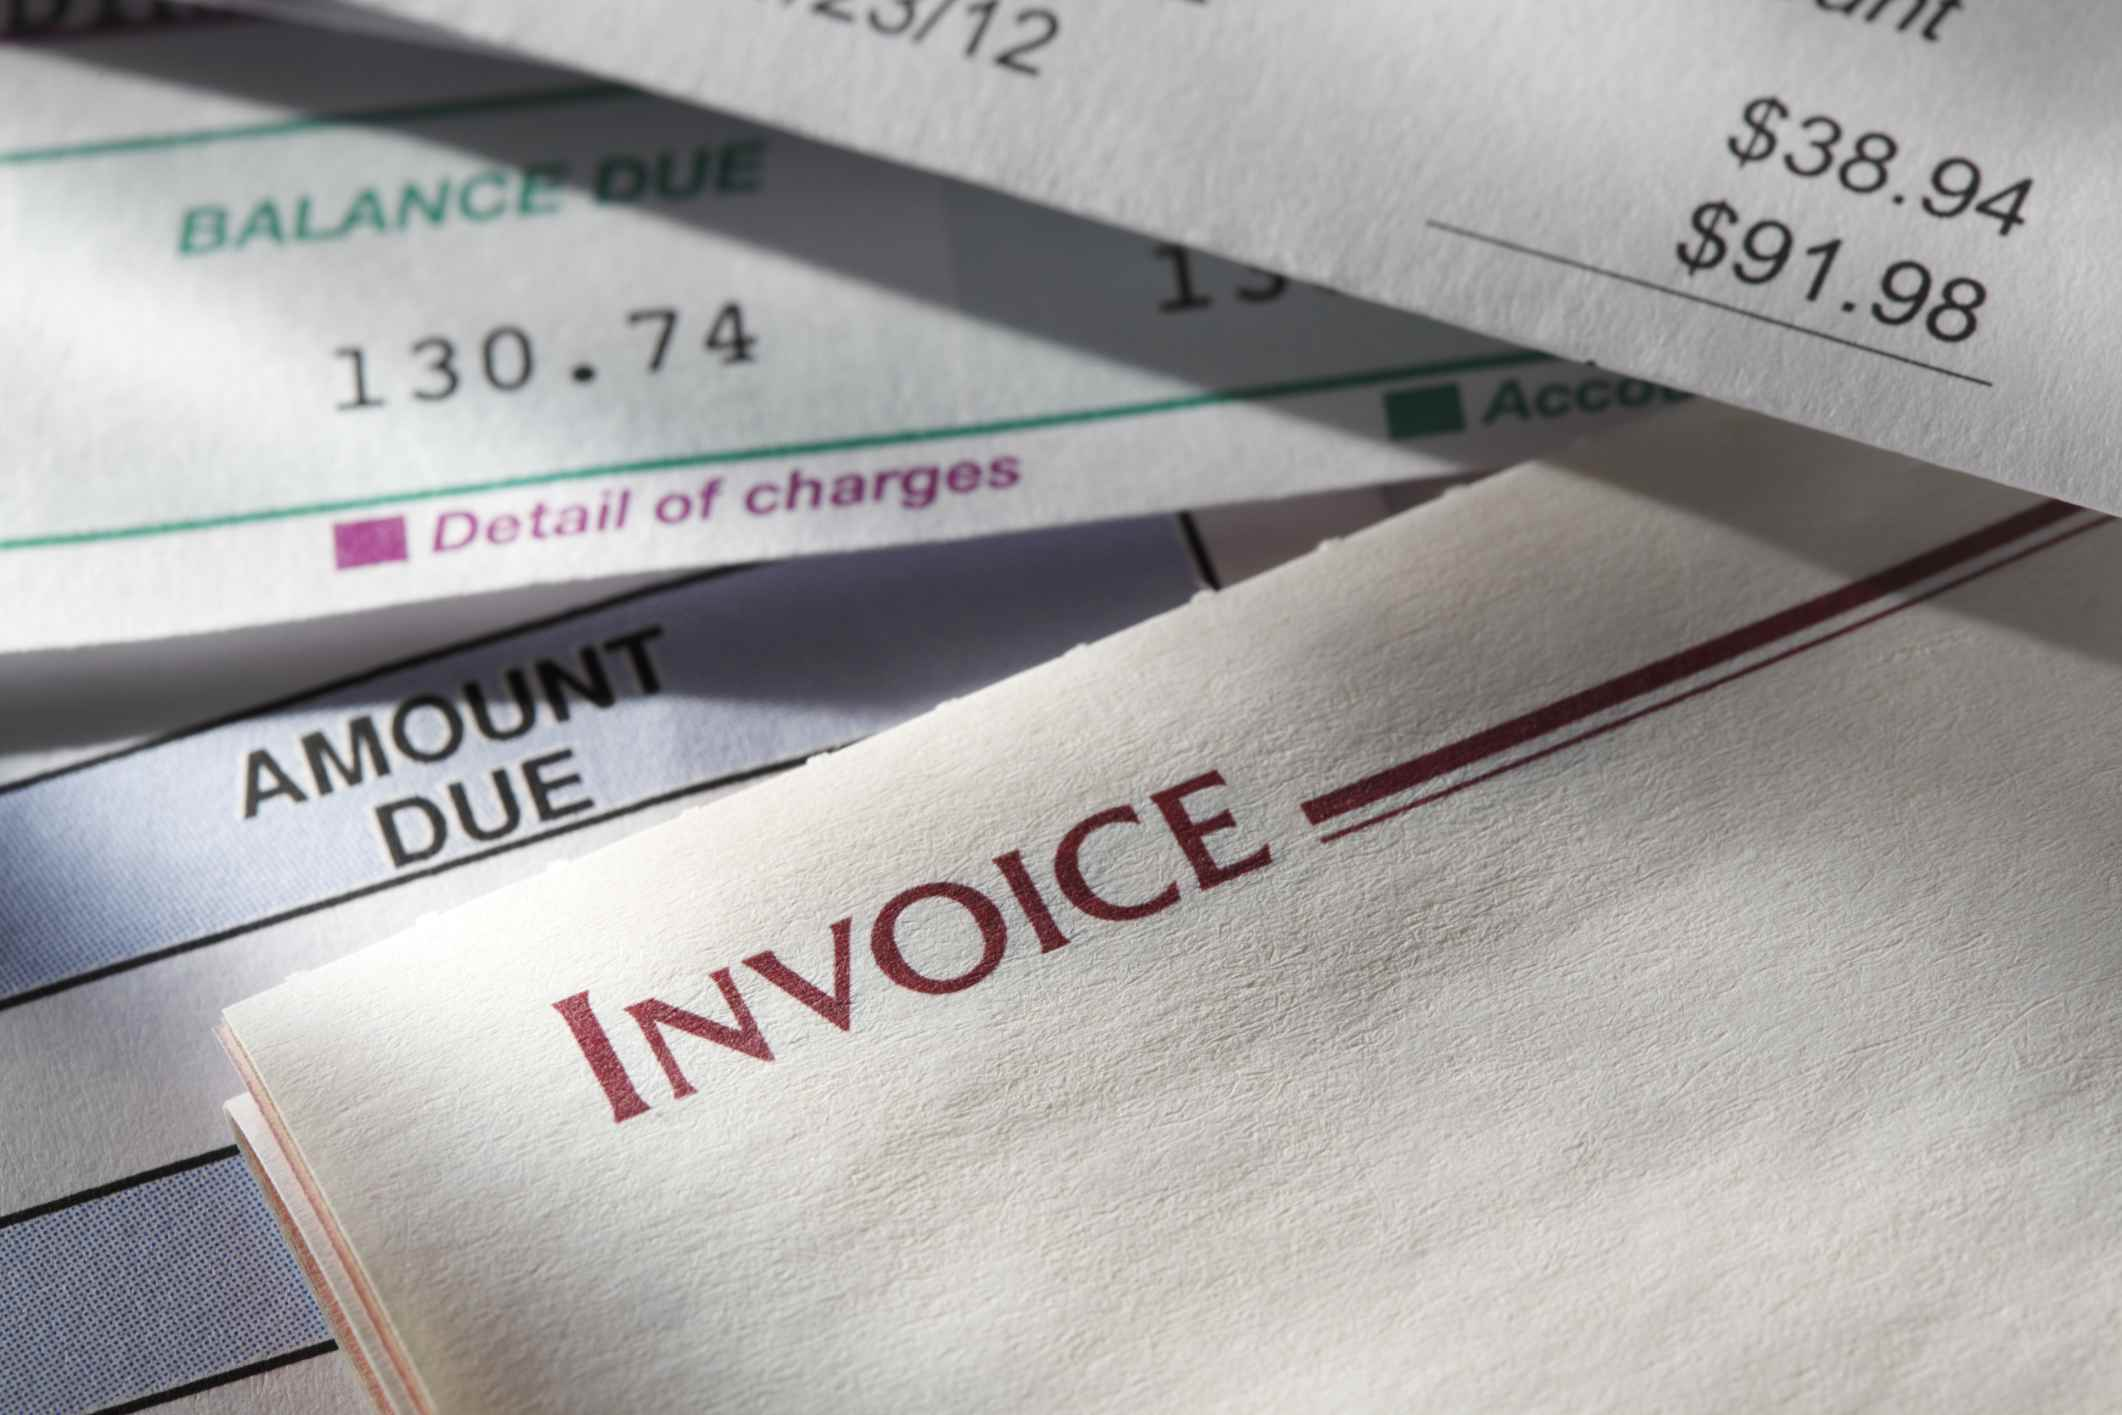 invoices and bills from a financial advisor